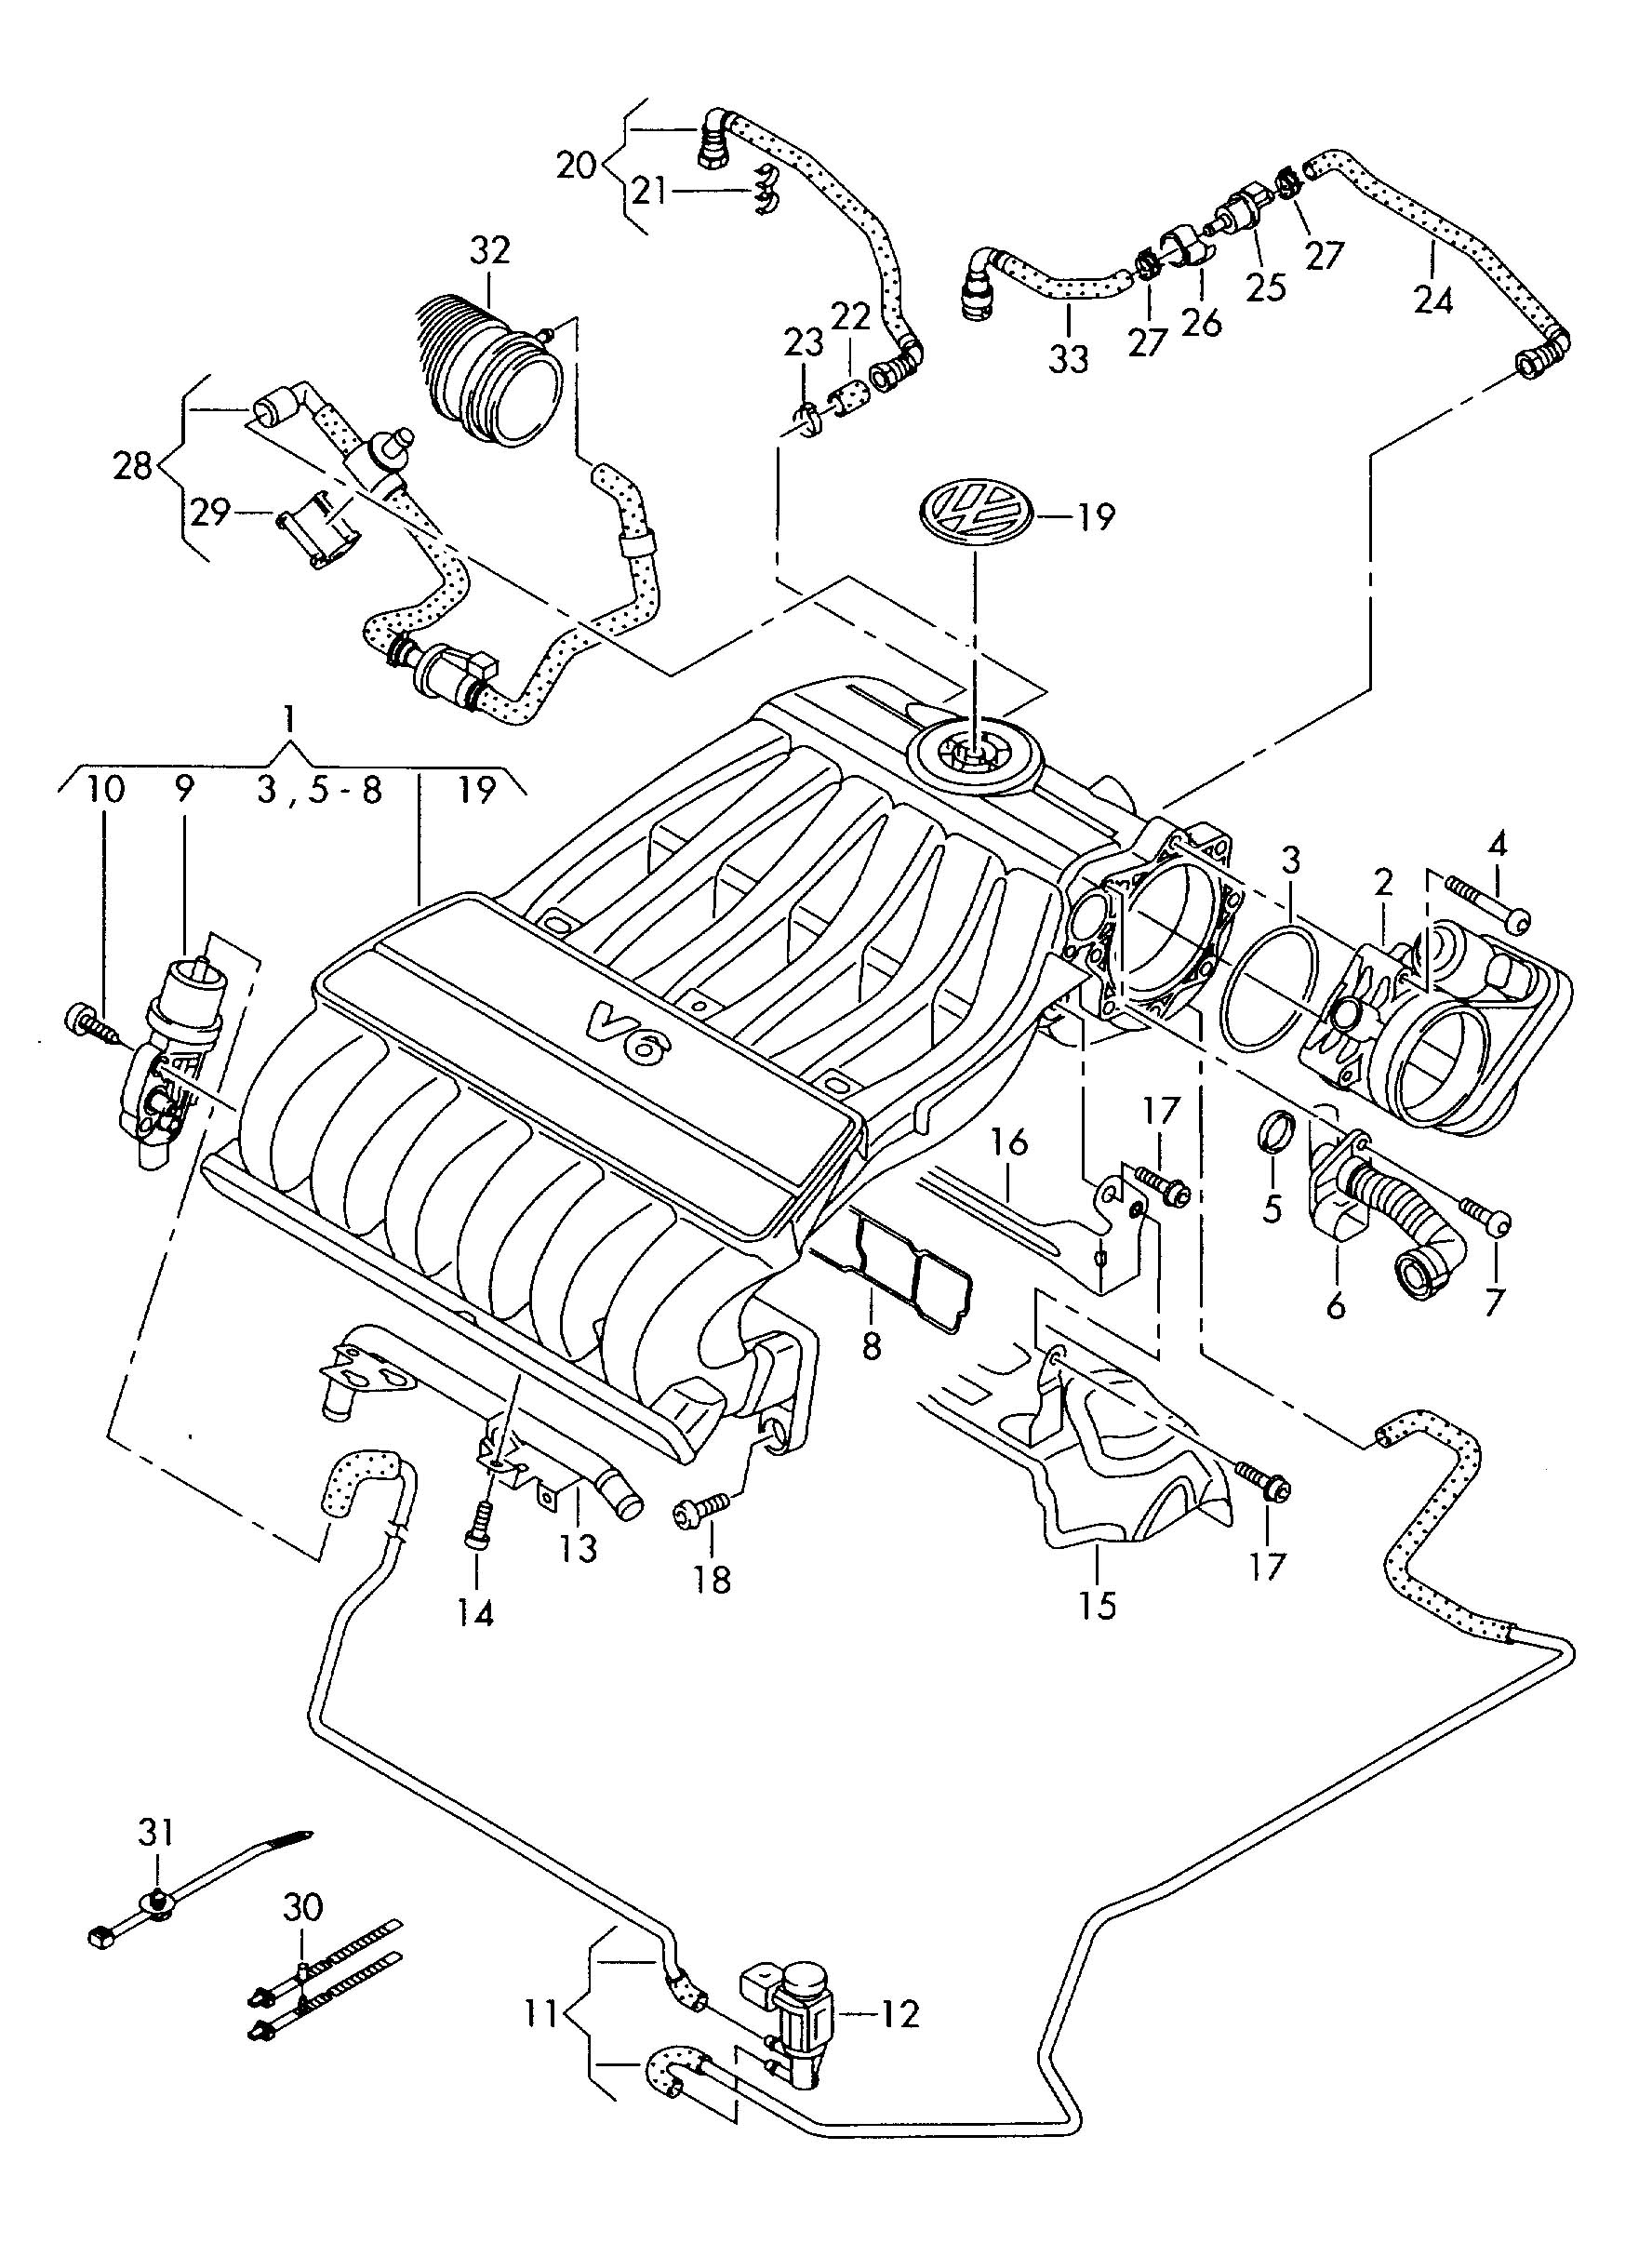 1994 Ford Probe Parts Diagram Html ImageResizerTool Com